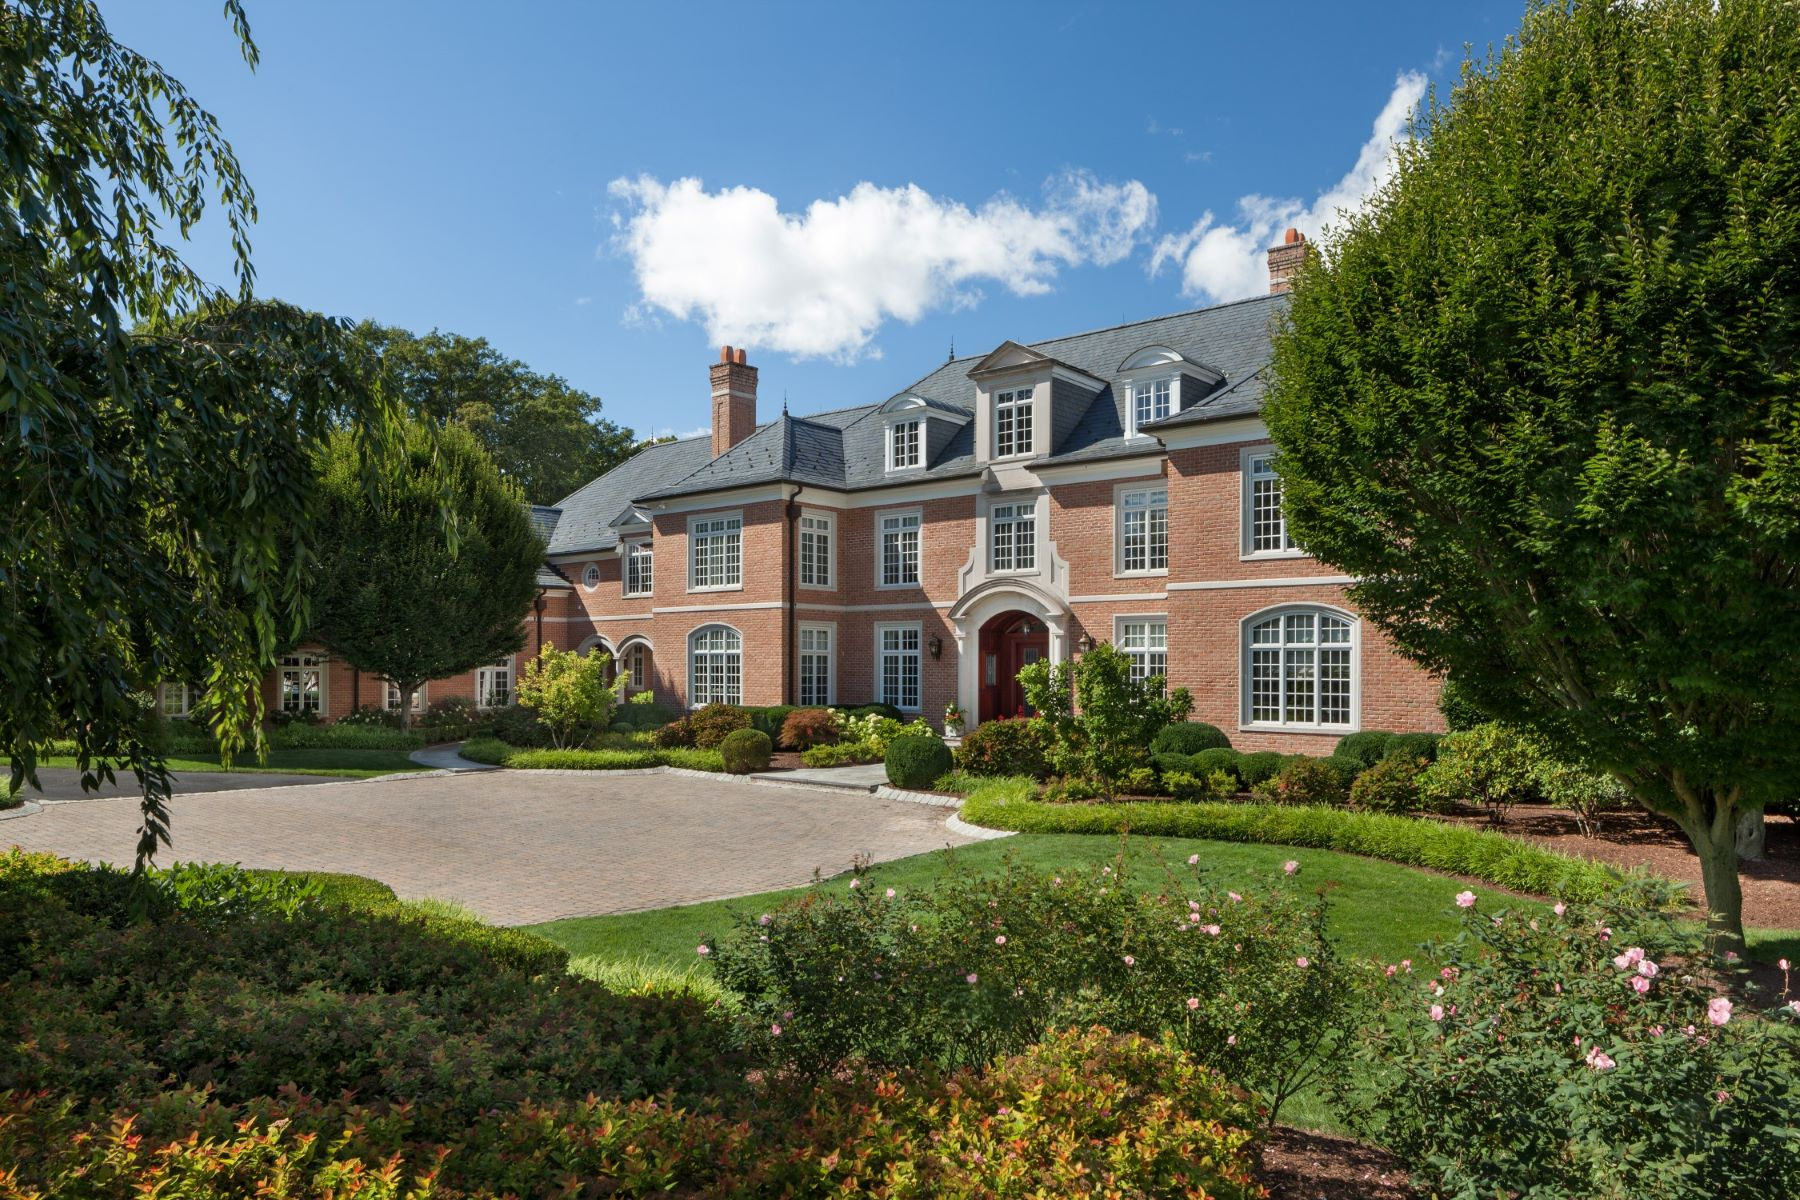 Casa Unifamiliar por un Venta en Mountaintop Manor 141 Mountain Top Road, Bernardsville, Nueva Jersey 07924 Estados Unidos